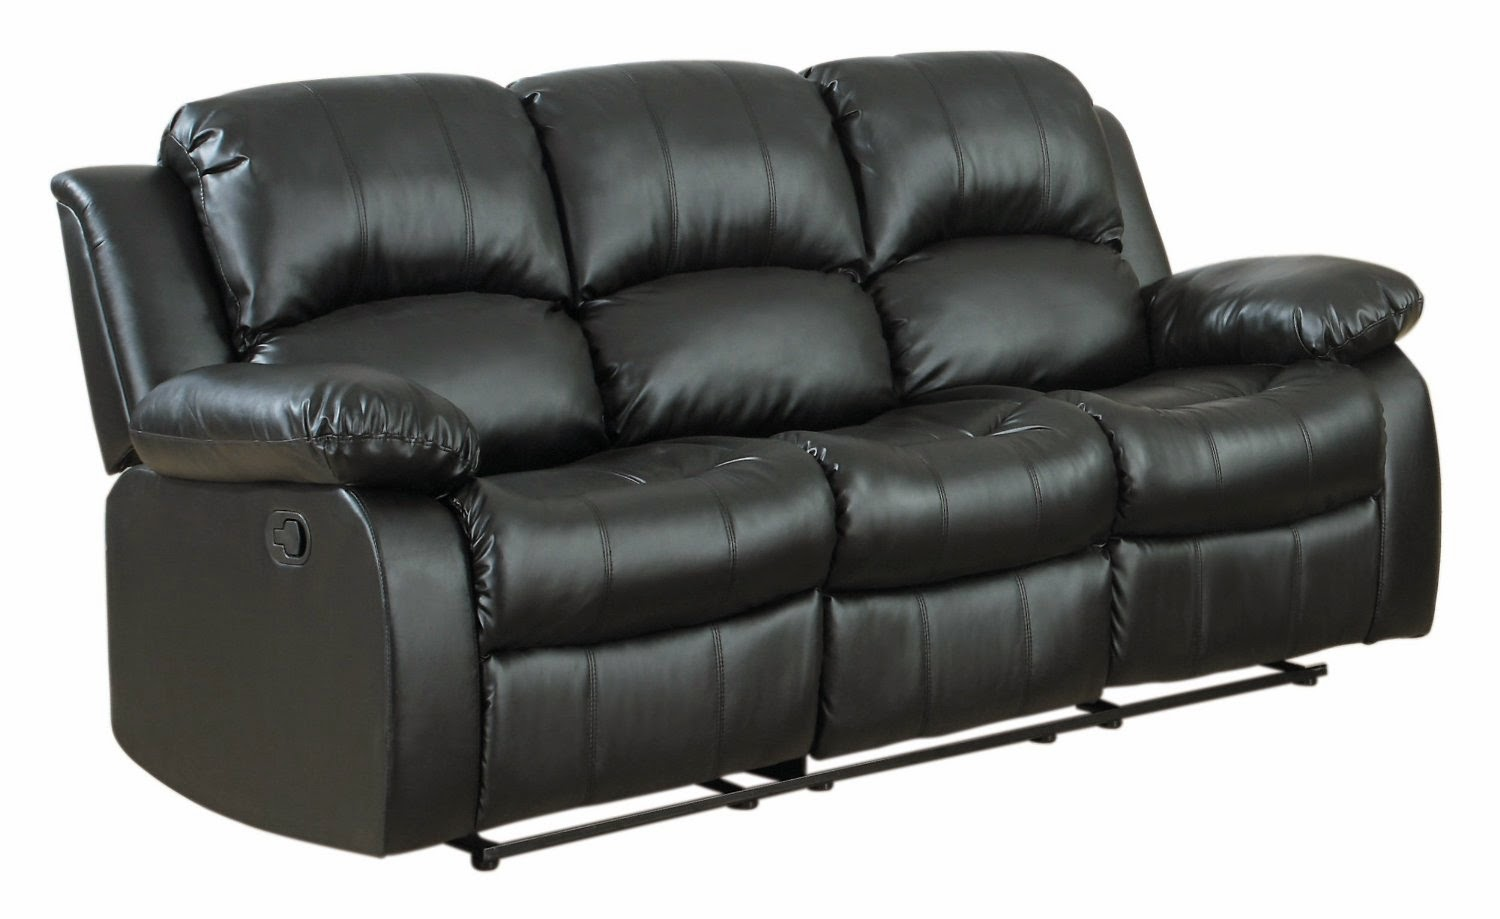 Fabulous Cheap Reclining Sofa And Loveseat Reveiws Best Recliner Caraccident5 Cool Chair Designs And Ideas Caraccident5Info